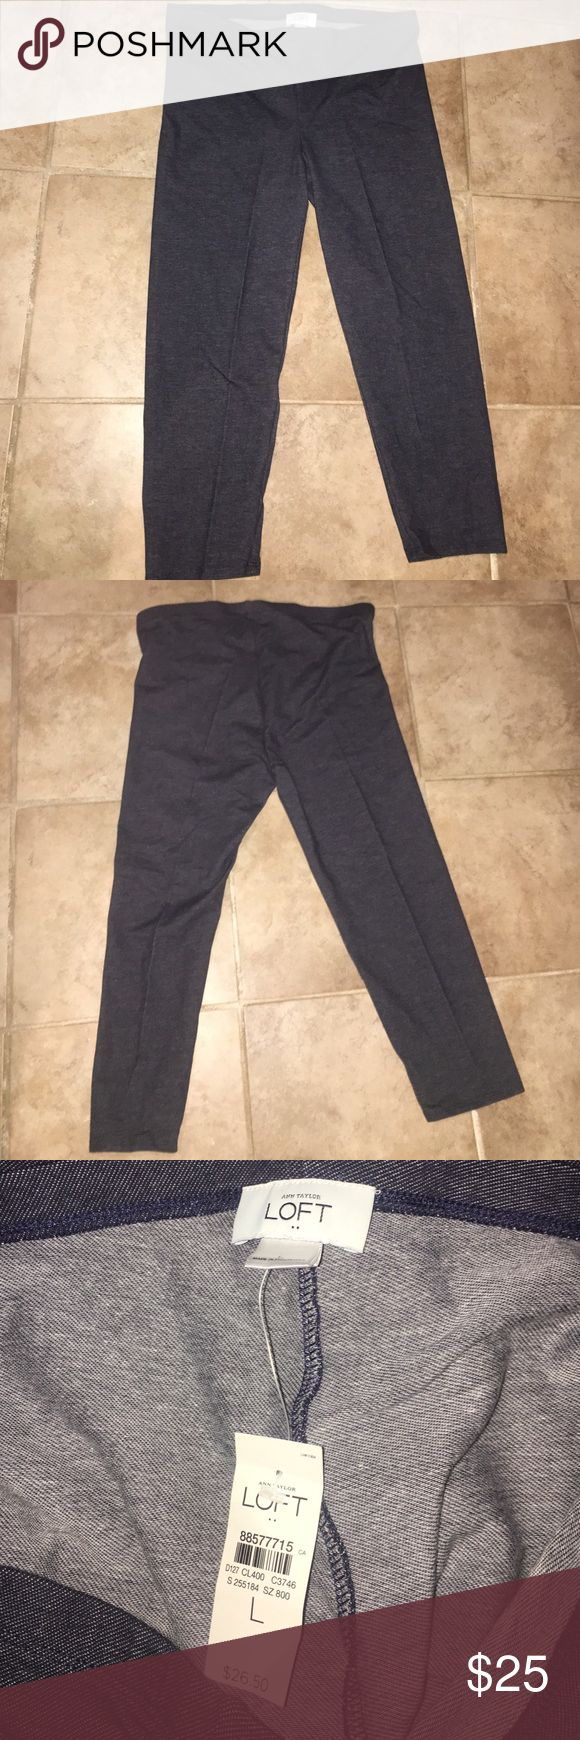 Loft Women's Capri leggings Loft women's Capri  leggings. NWT! Made to replicate jeans with the heathered indigo color. Size large. LOFT Pants Leggings